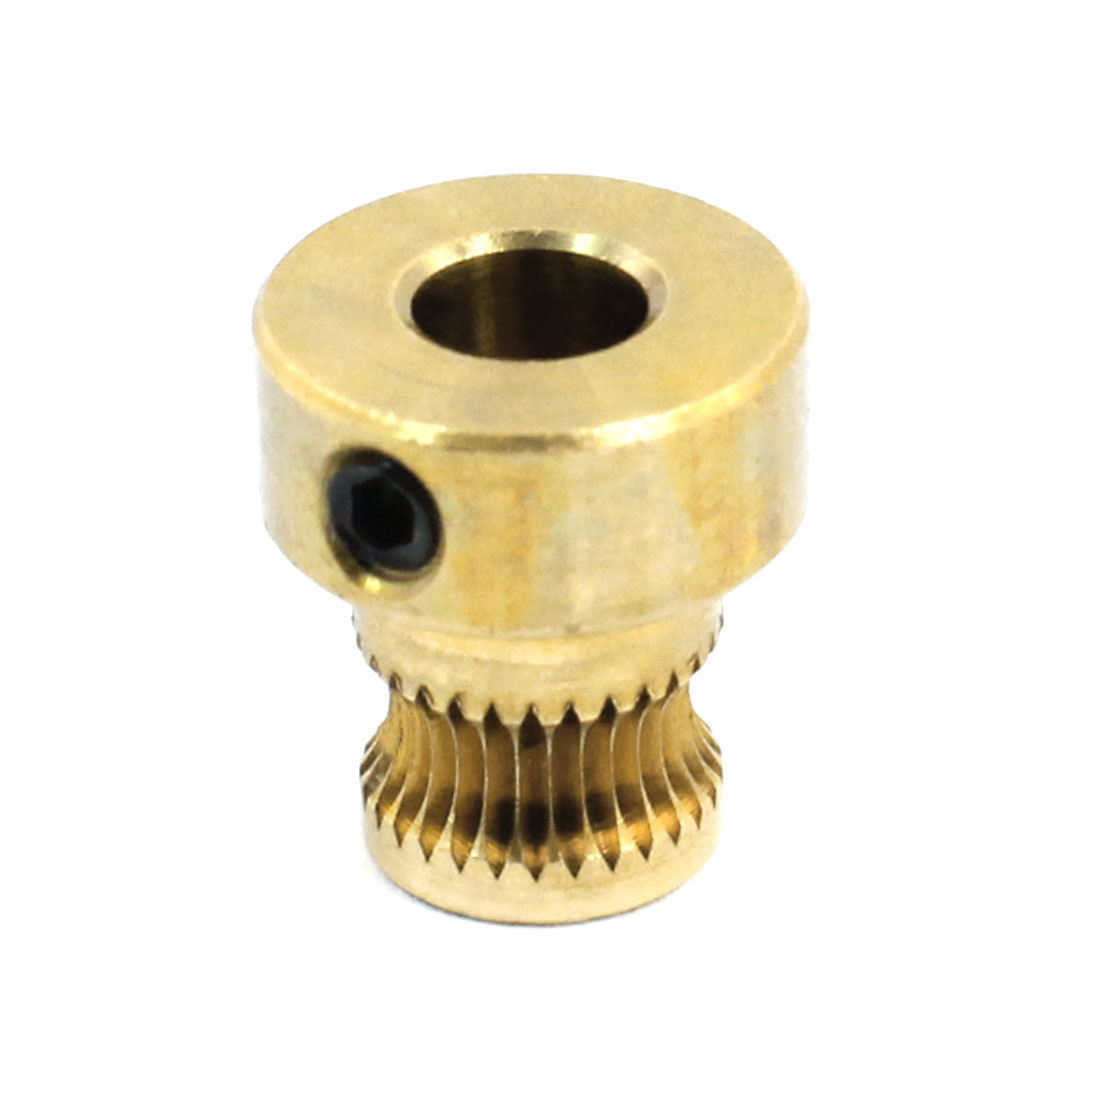 Brass 3D Printer Feedstock Extrusion Wire Wheel Extruder Gear